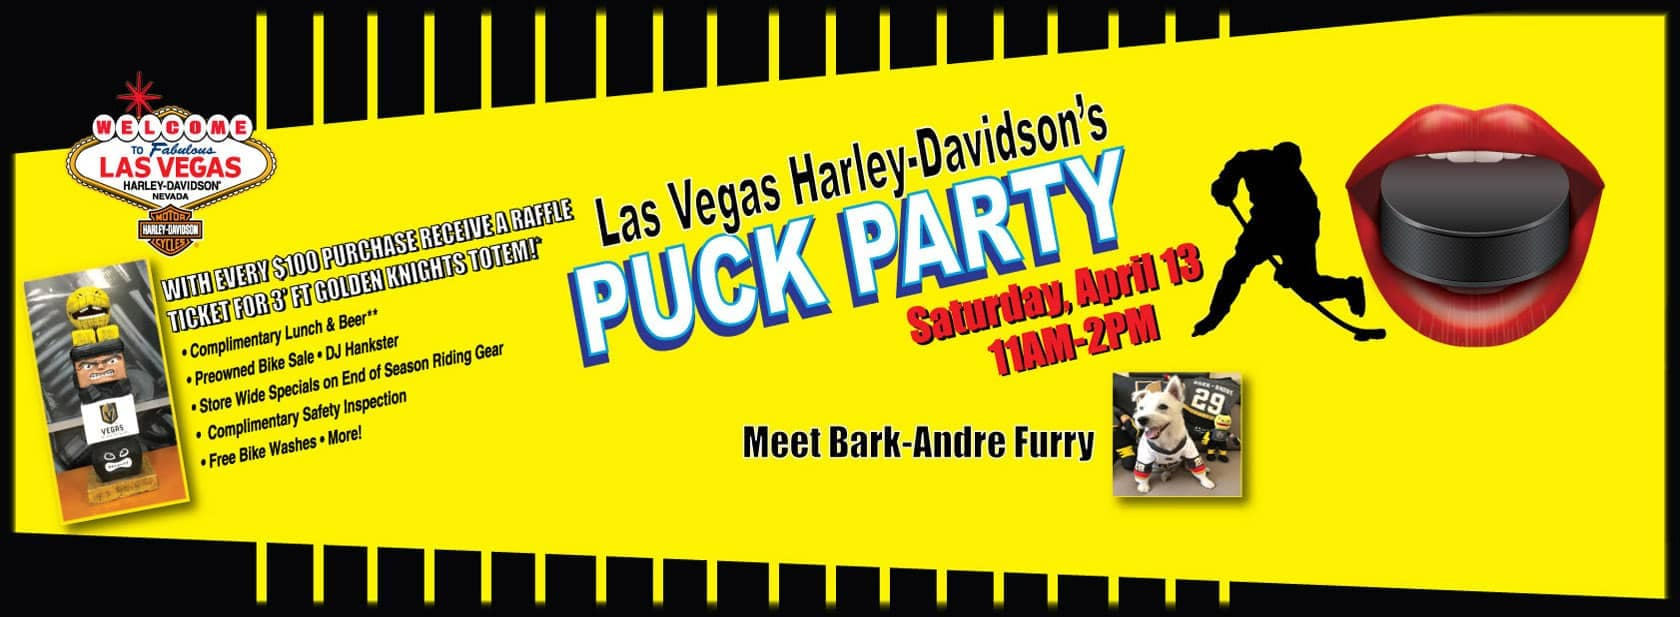 Don't Miss the Puck Party on April 13th at Las Vegas Harley-Davidson